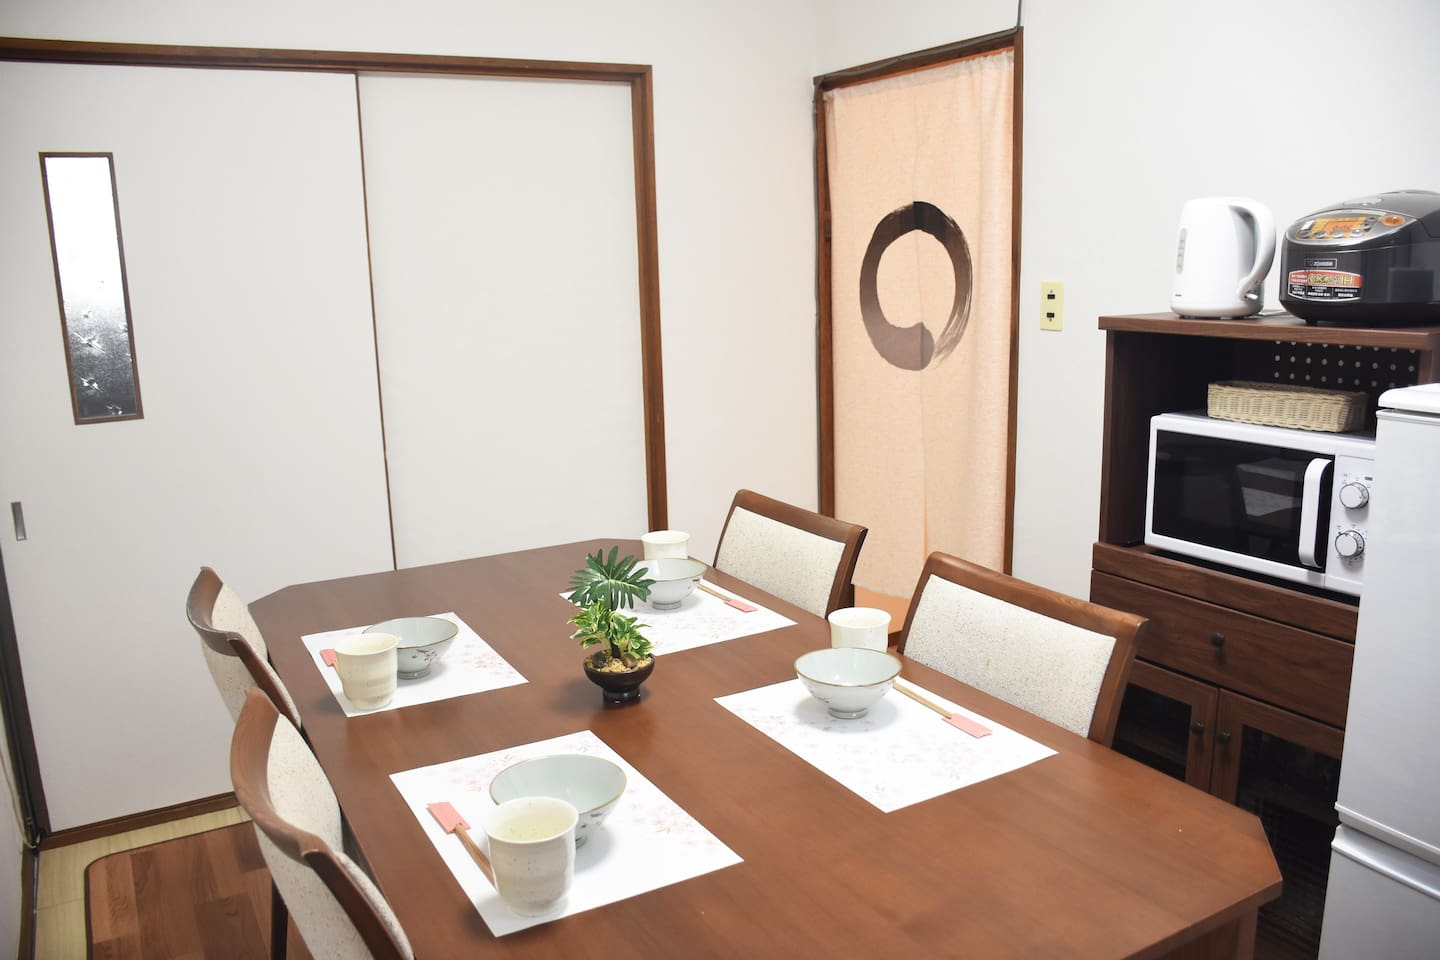 Japanese style dining table in dining room